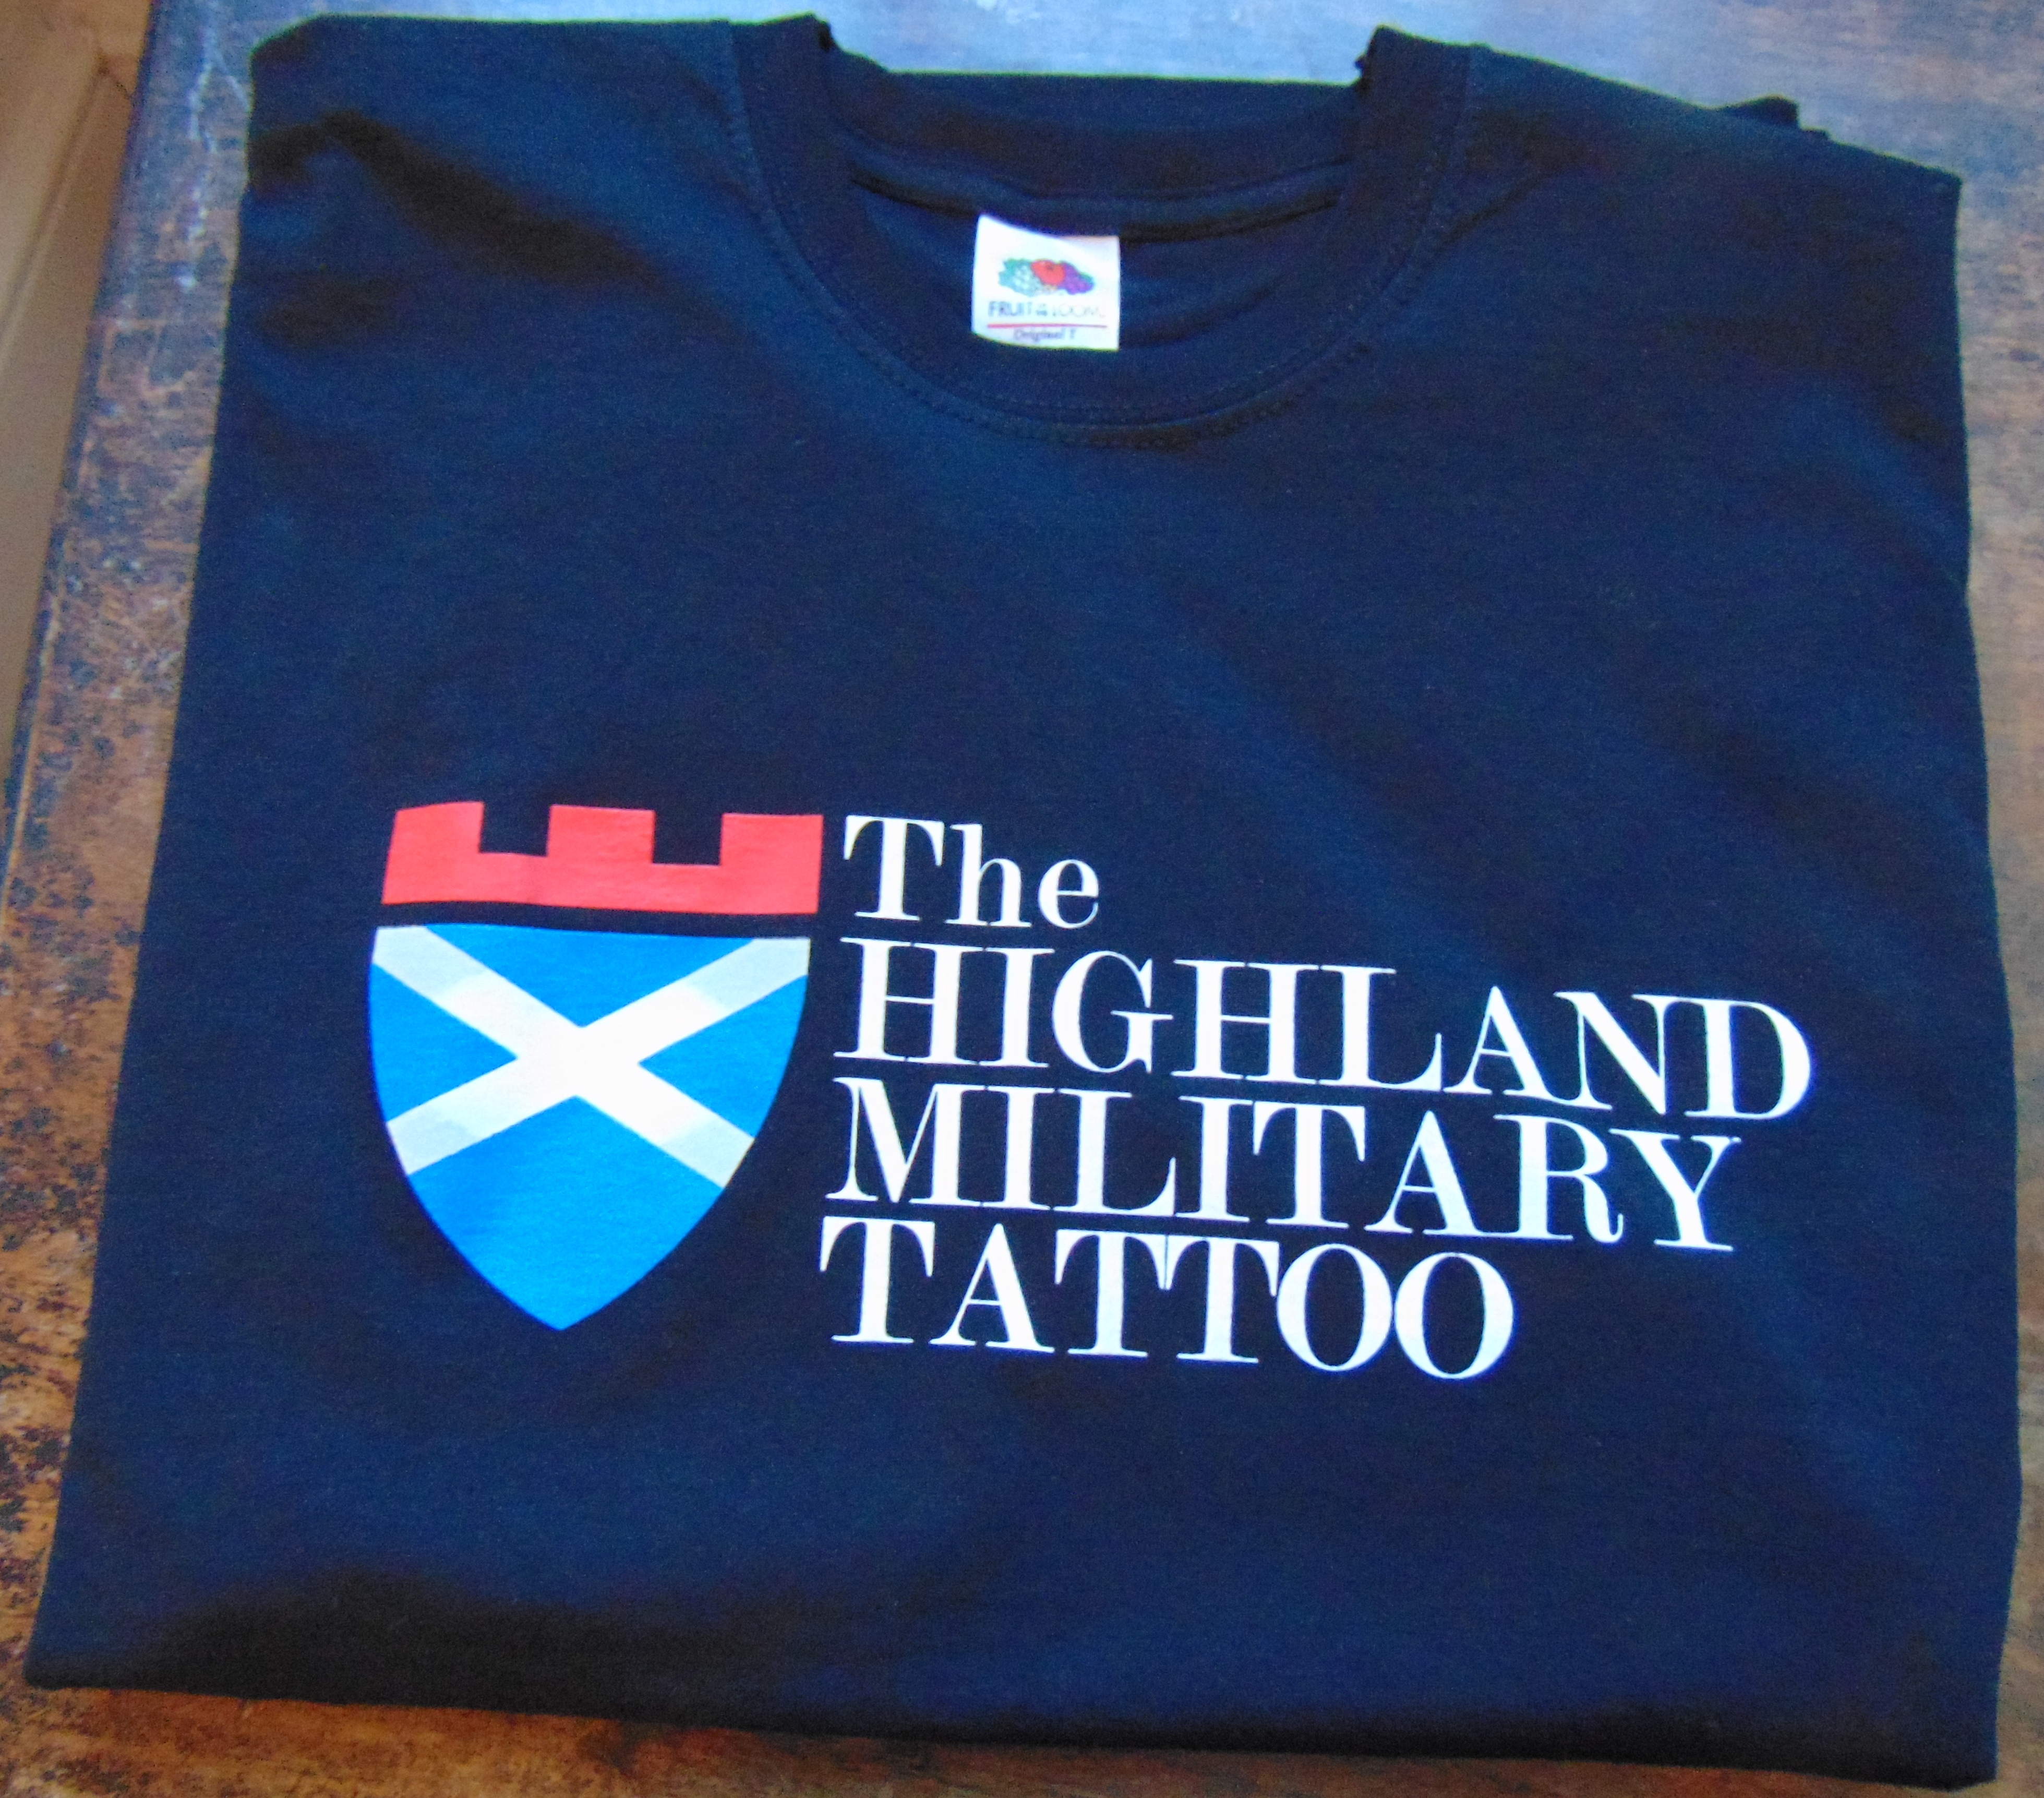 The Highland Military Tattoo T-Shirt - black